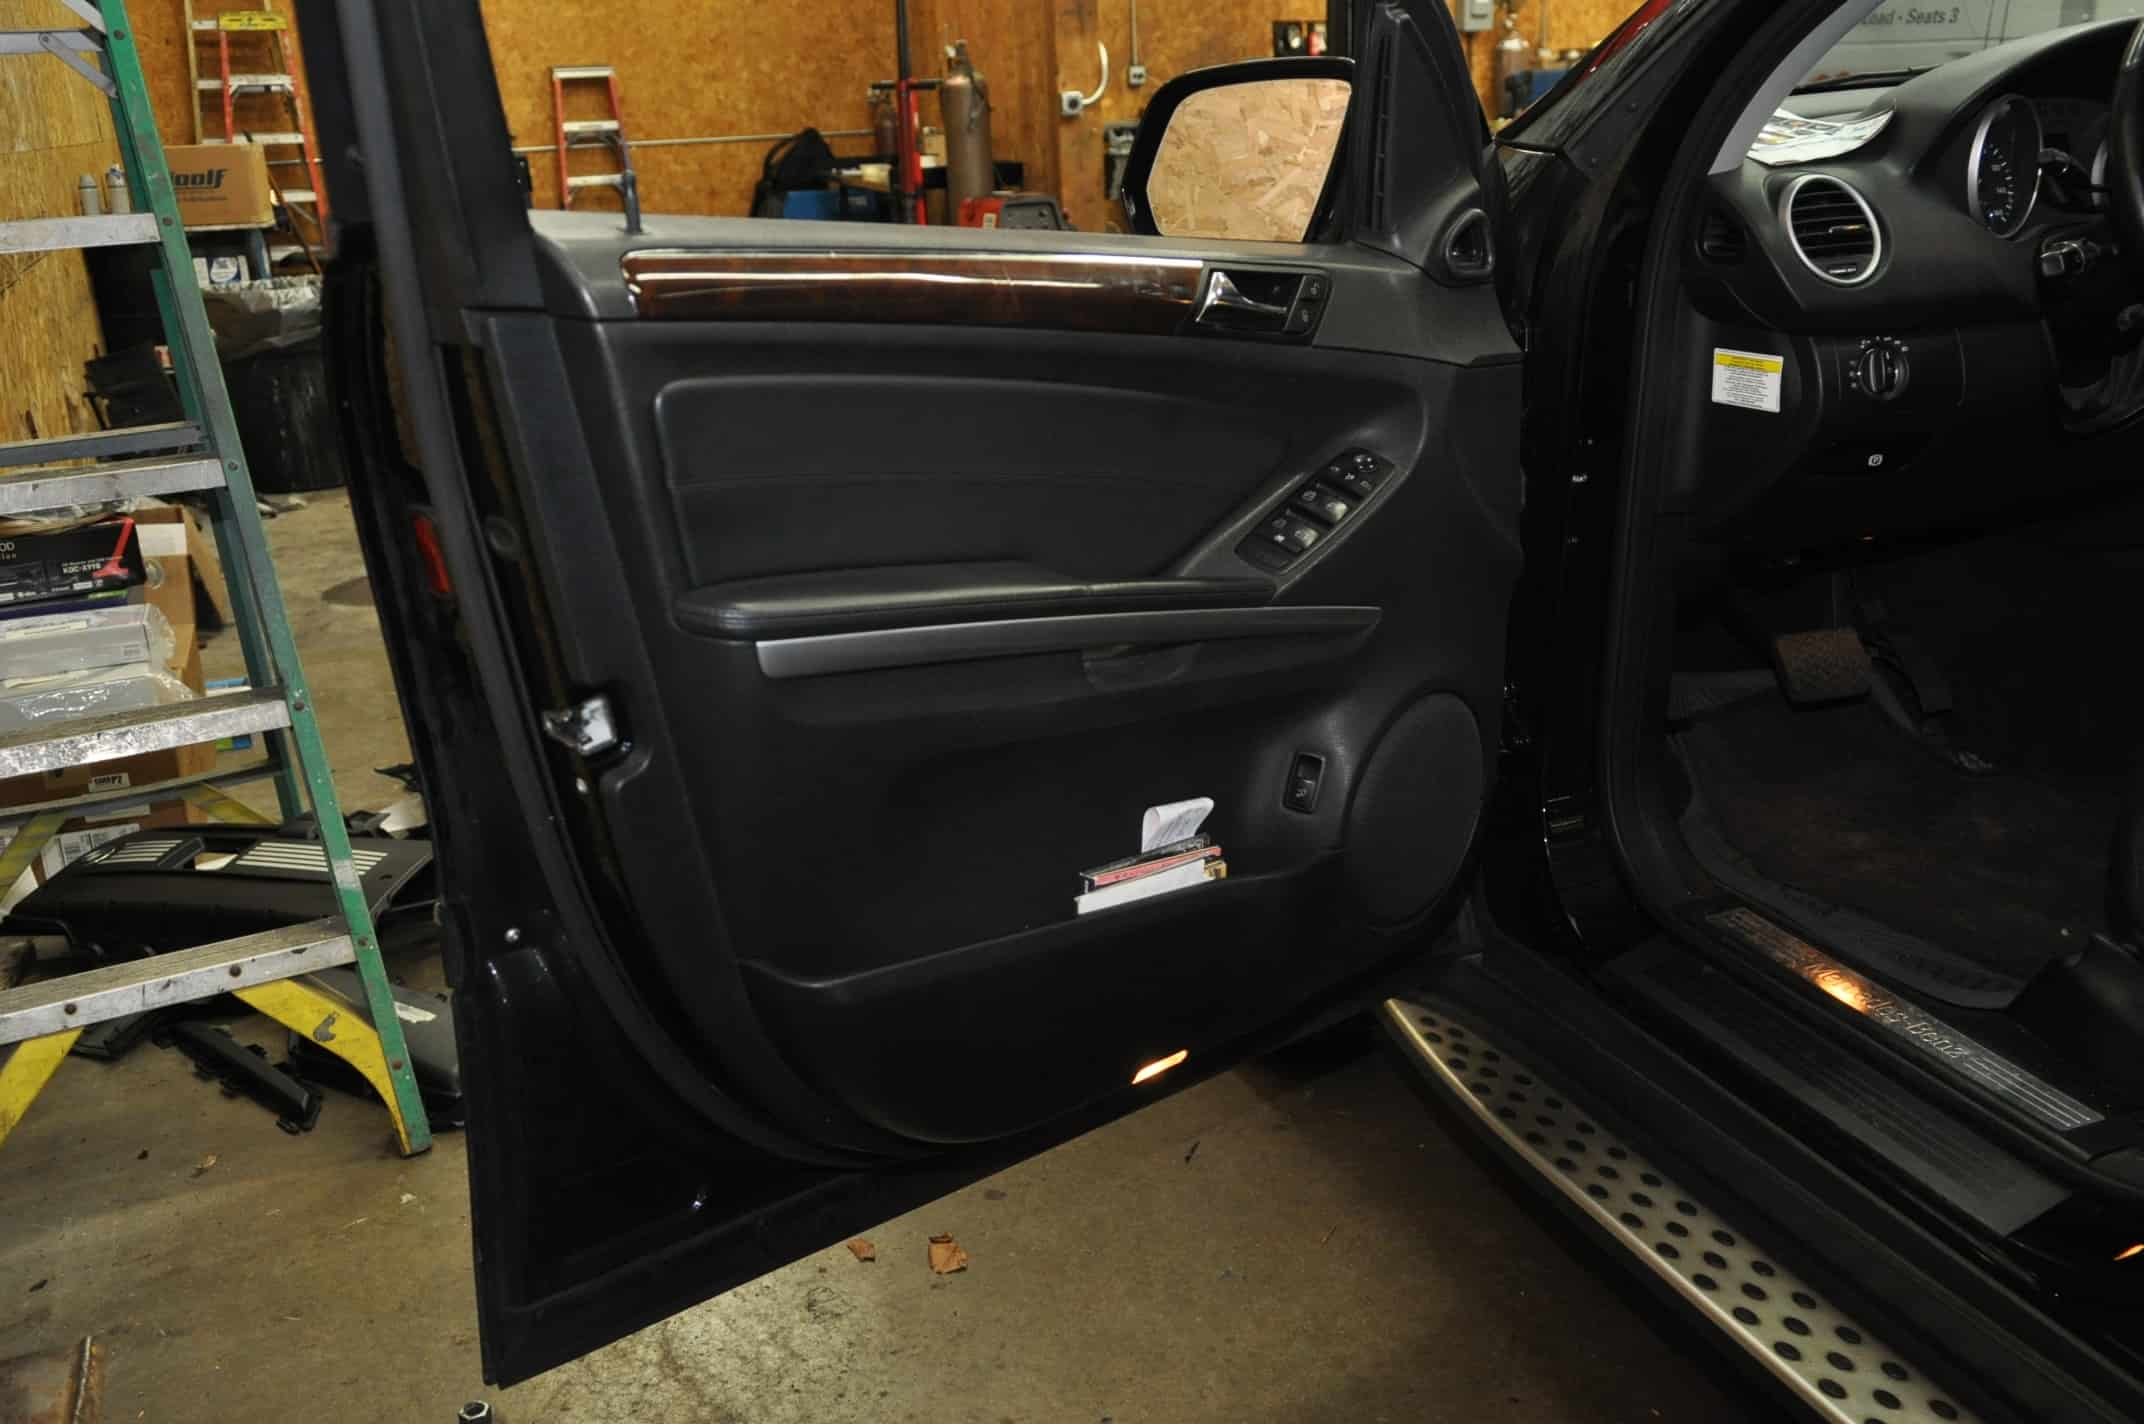 2010 Mercedes Benz Ml350 Window Does Not Work Operate With Switch